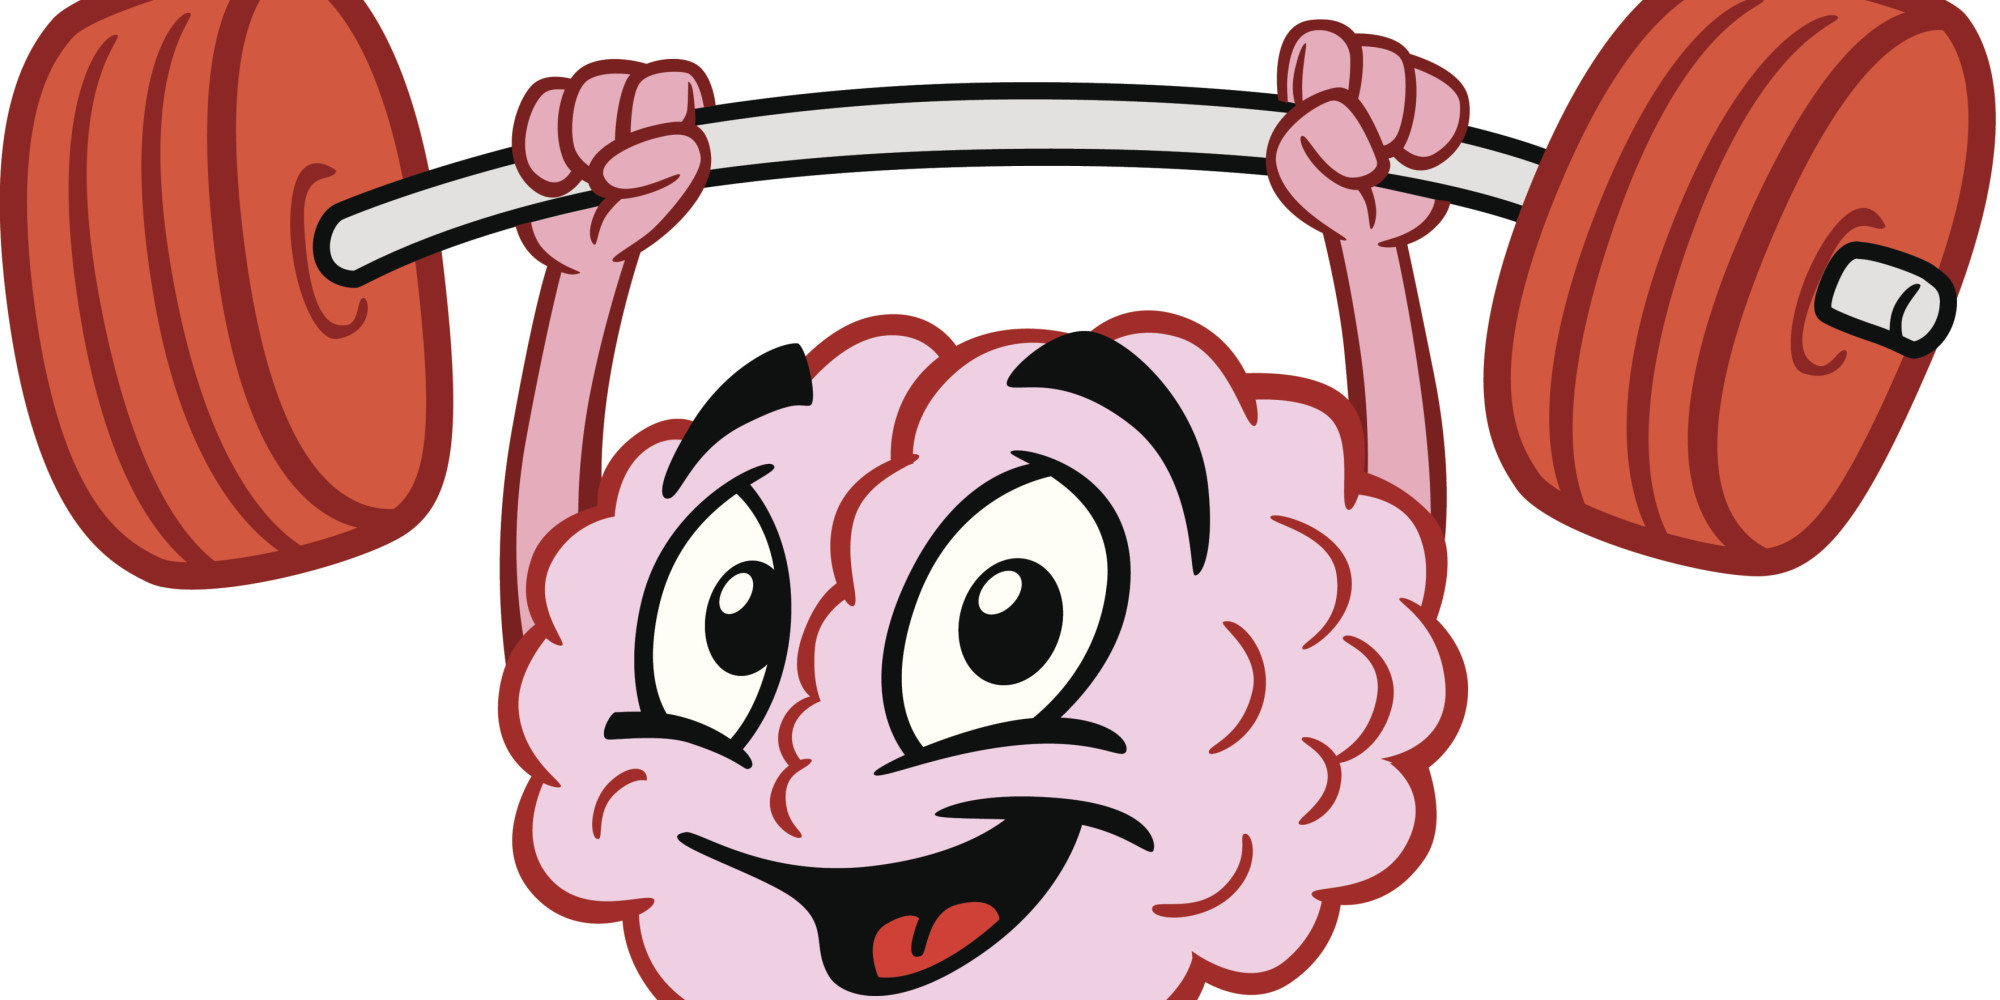 Brain clipart zombie brain HuffPost Brain Improving The To